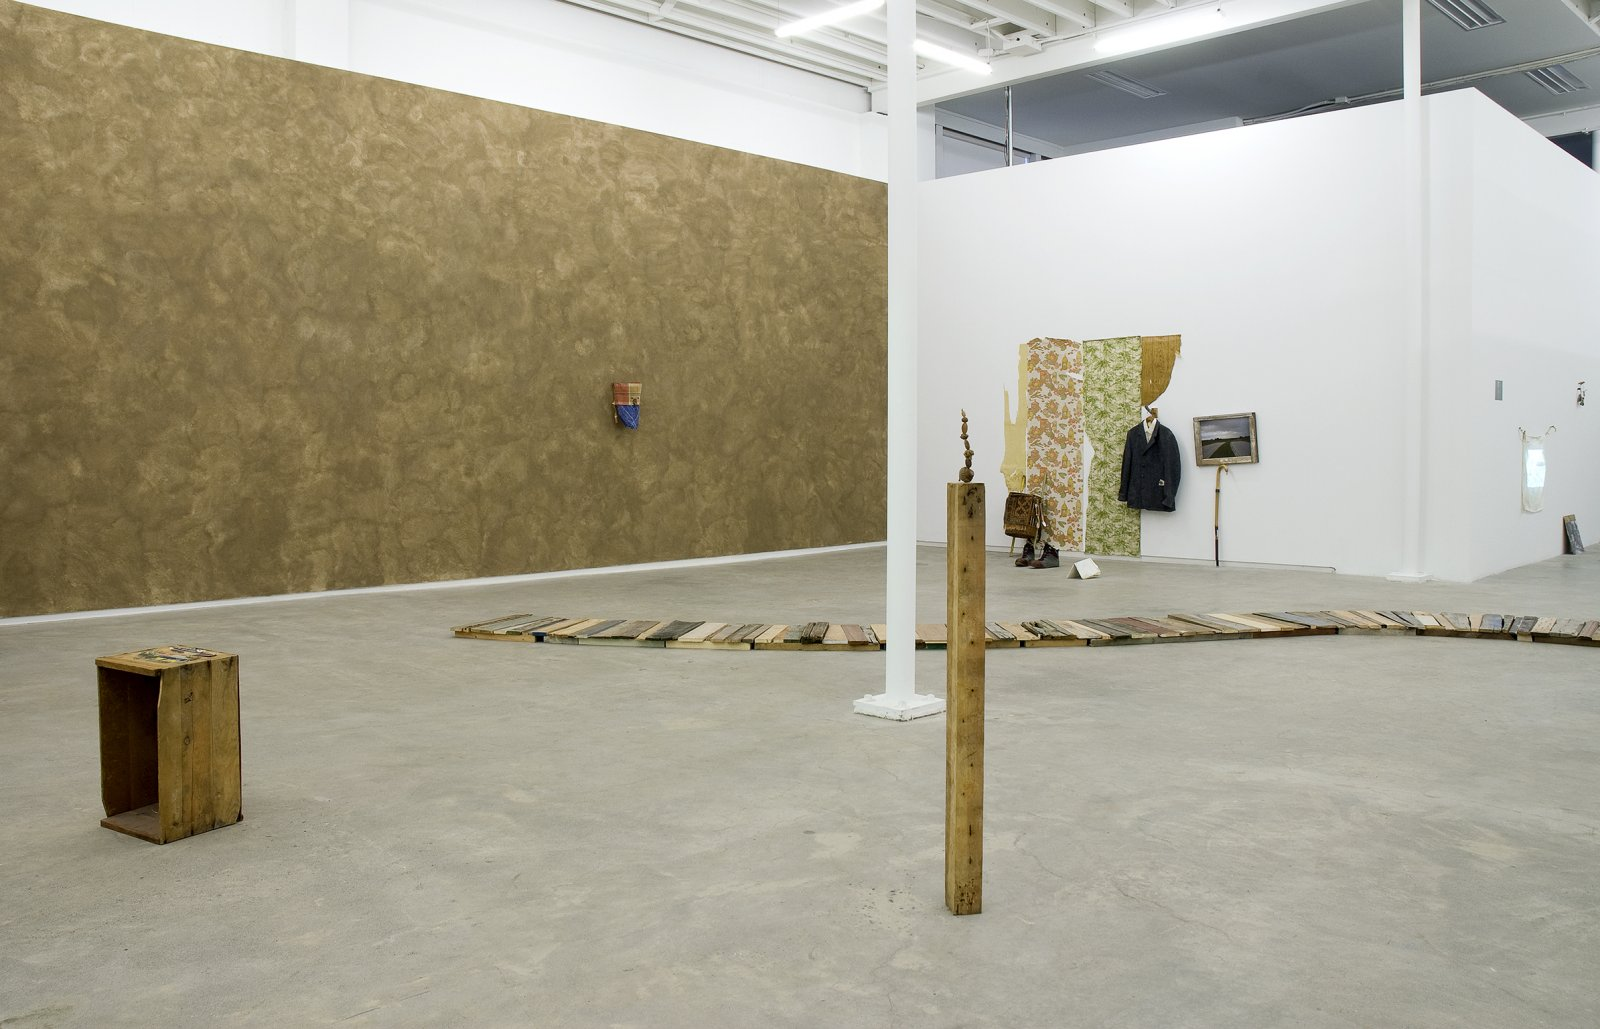 Gareth Moore, installation view, Uncertain Pilgrimage, Catriona Jeffries, 2009  by Ashes Withyman